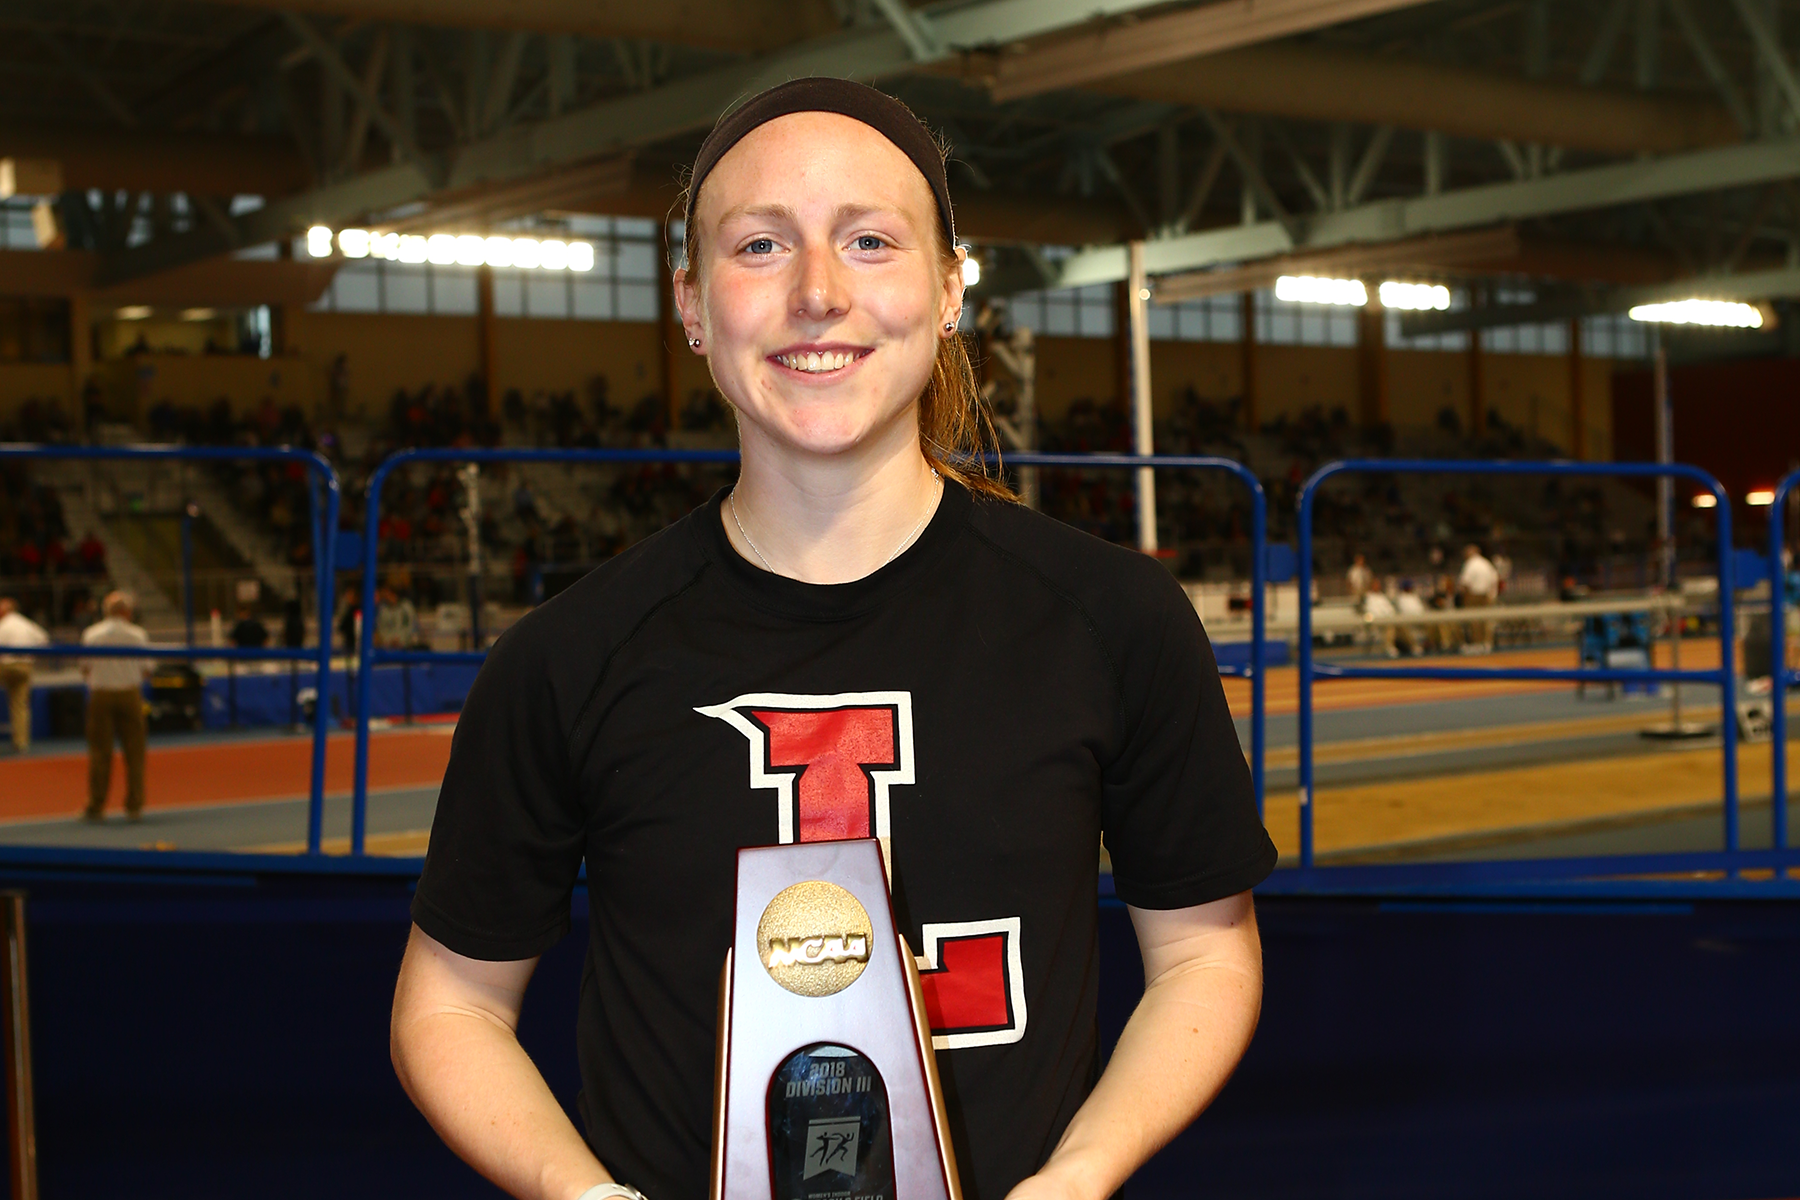 Natalie Deacon poses with her All-American award.